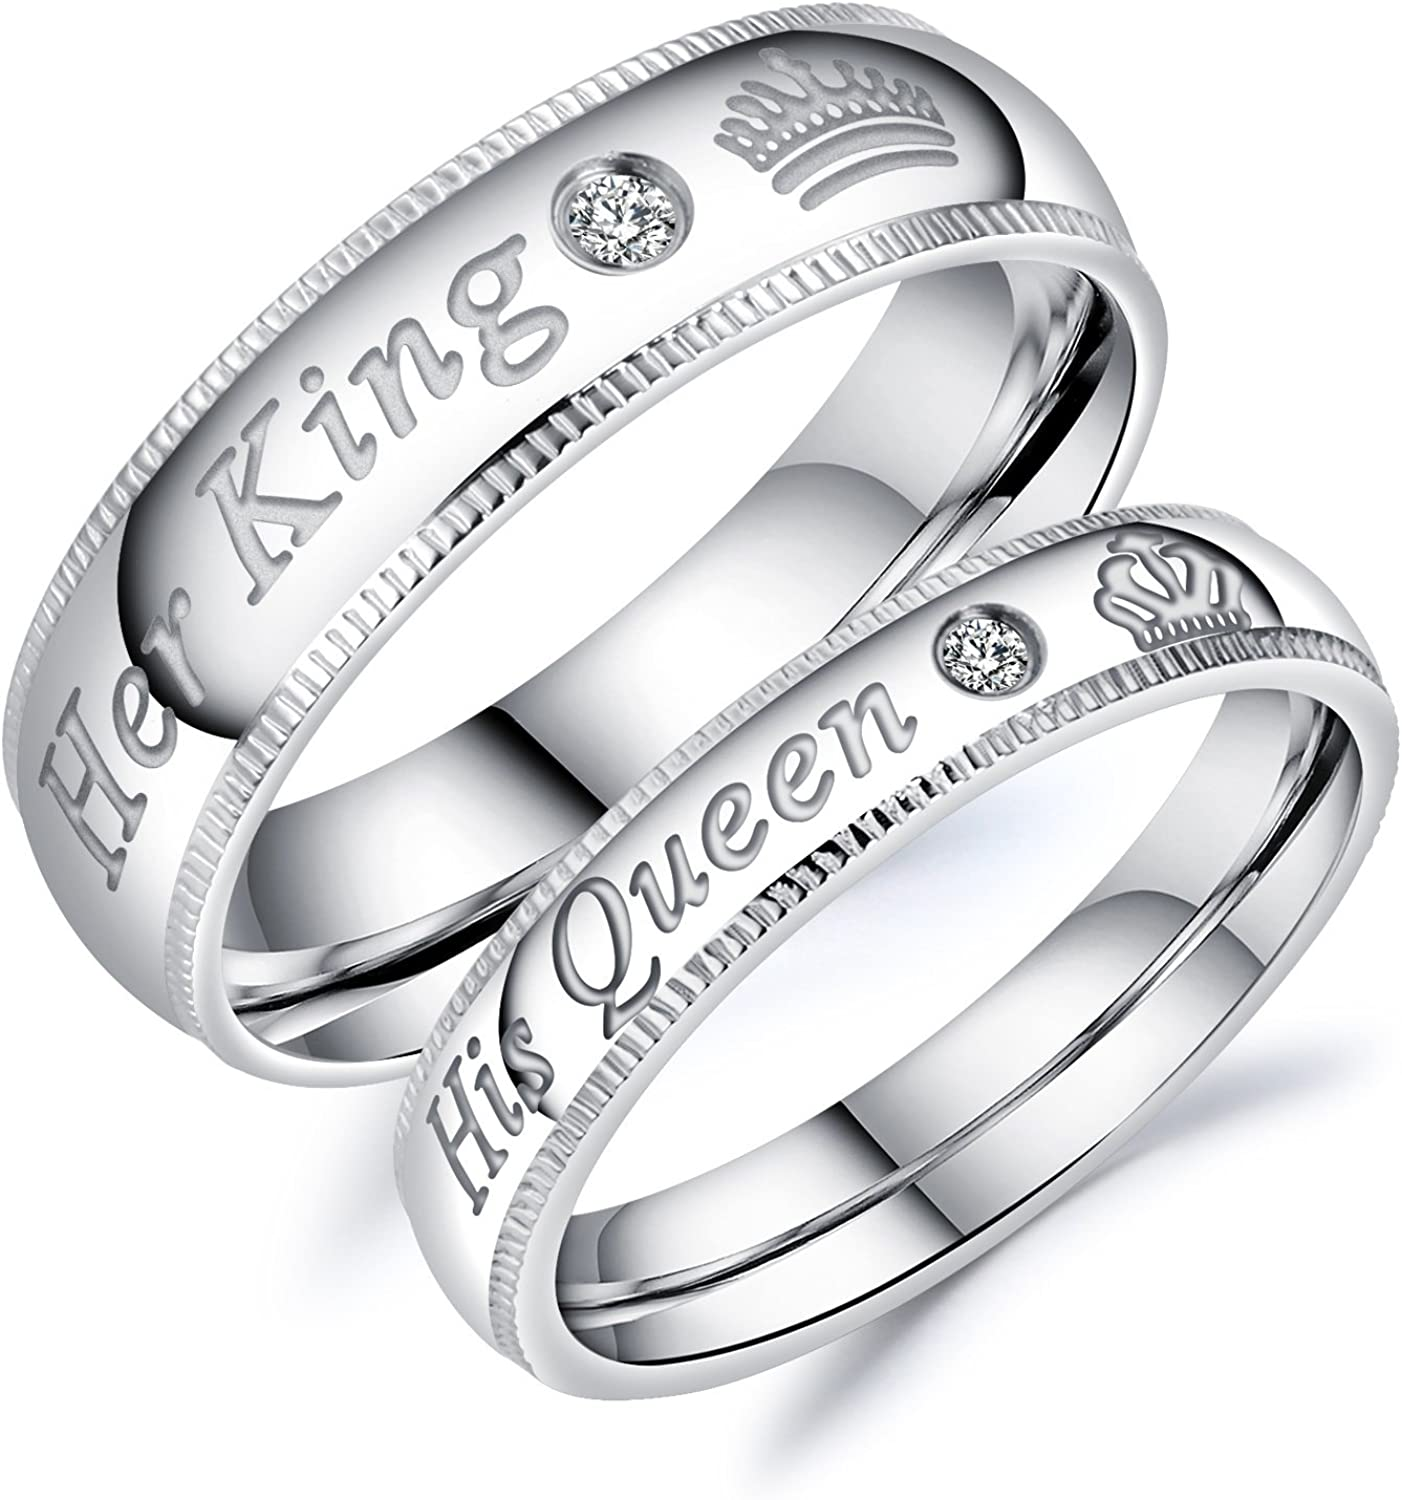 Amazon Com Titanium Stainless Steel Her King His Queen Band Ring